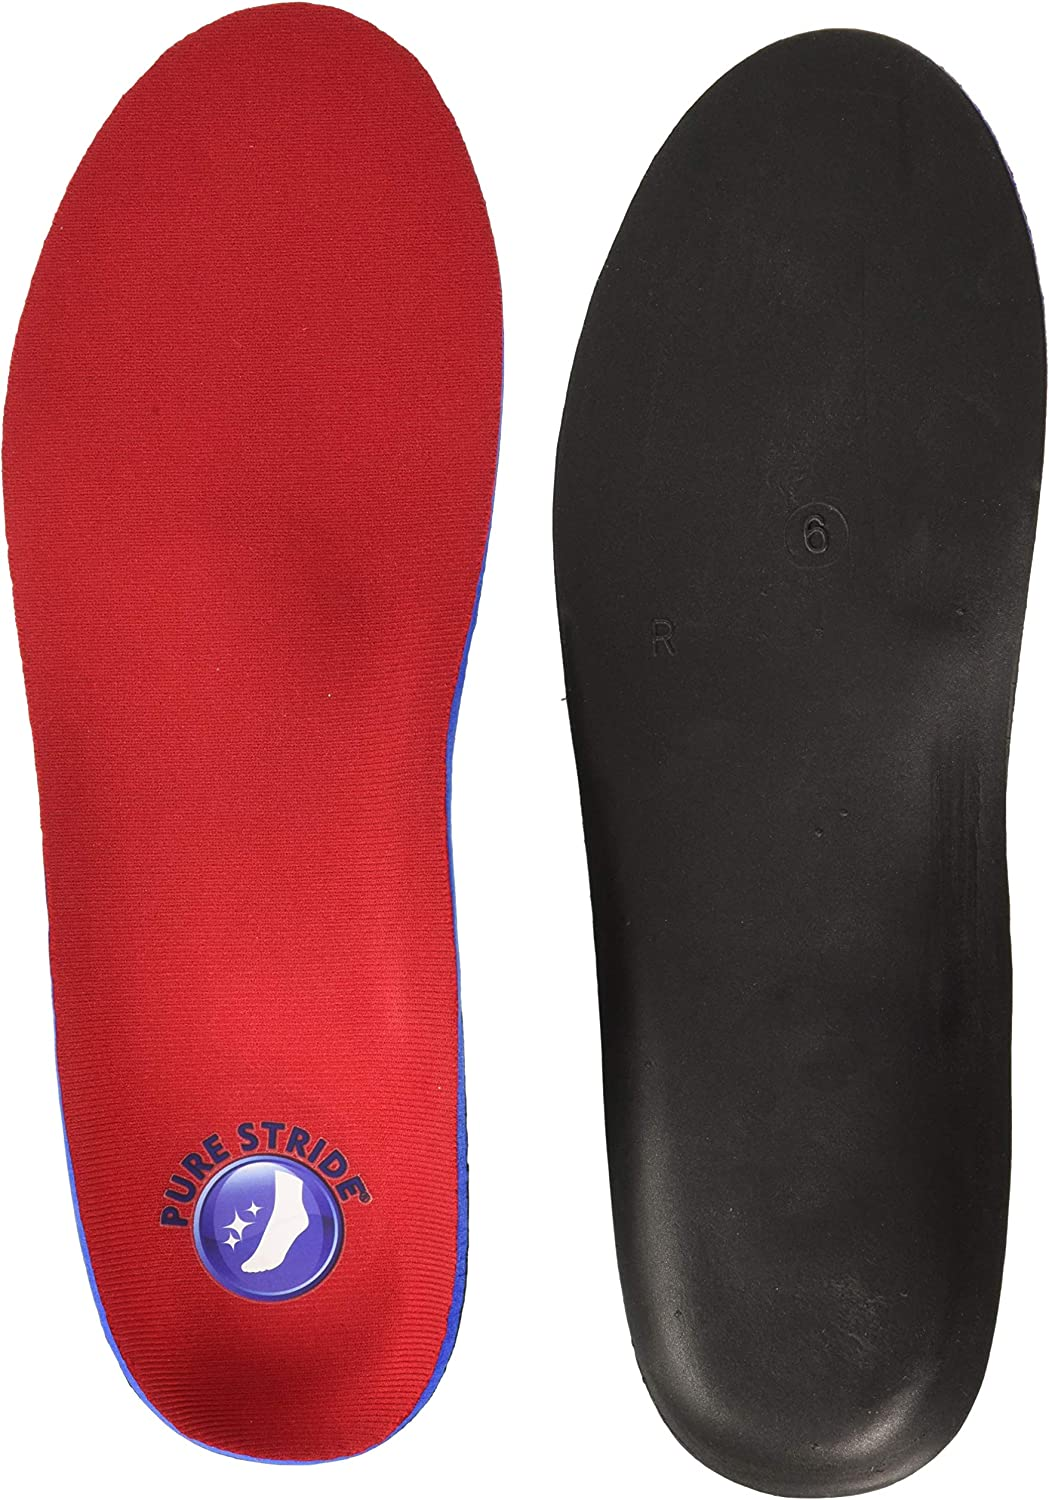 PURE STRIDE Full Length Orthotics Inserts Arch Support New All Sizes